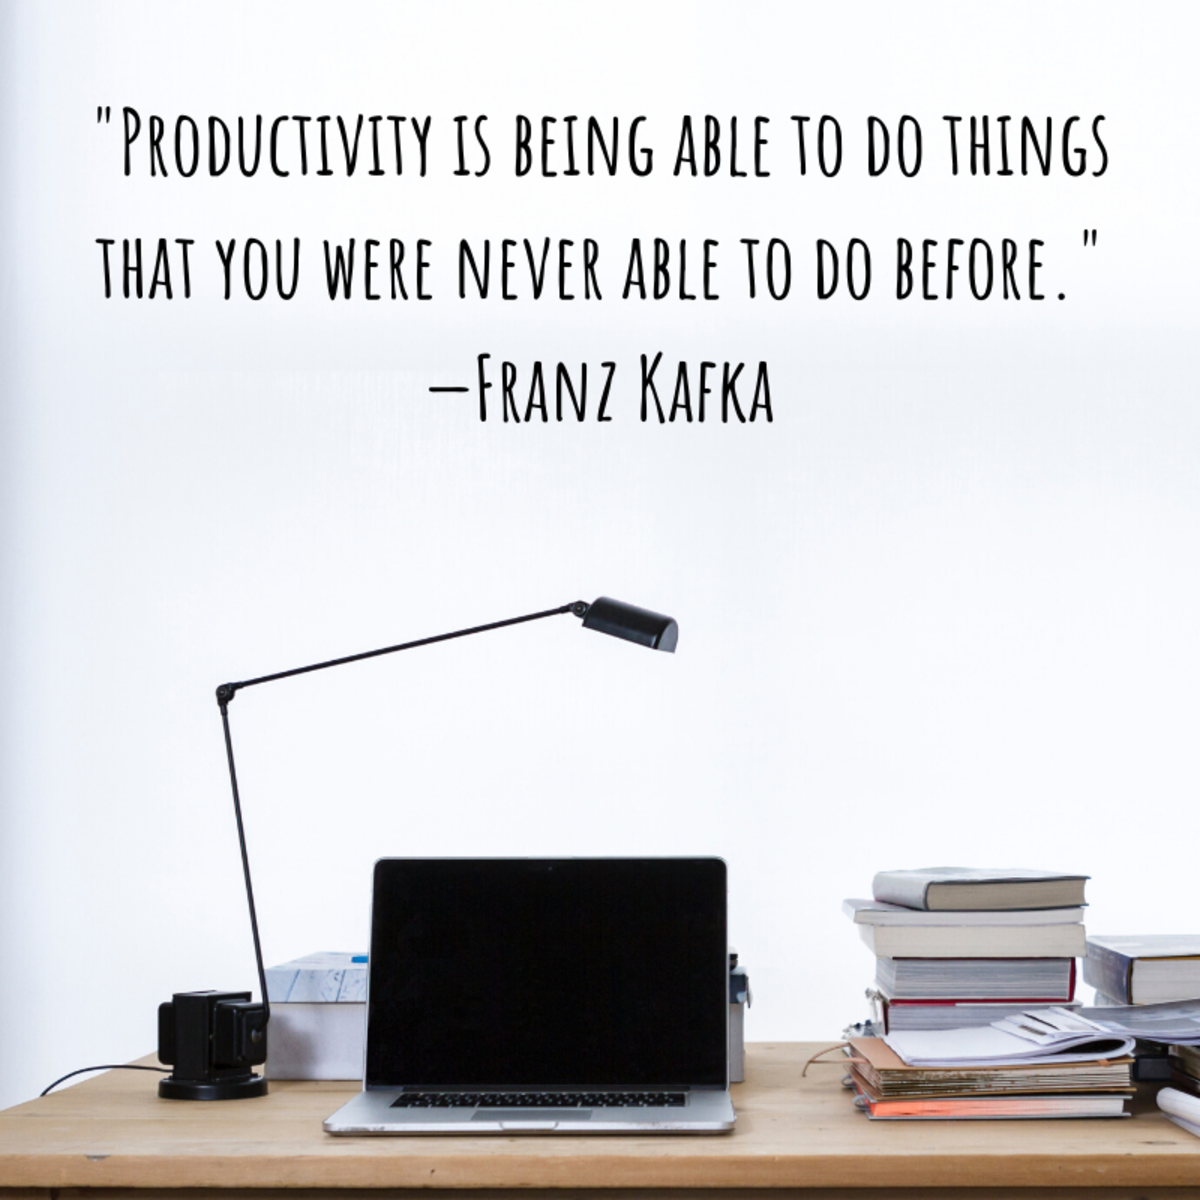 """""""Productivity is being able to do things that you were never able to do before."""" – Franz Kafka"""